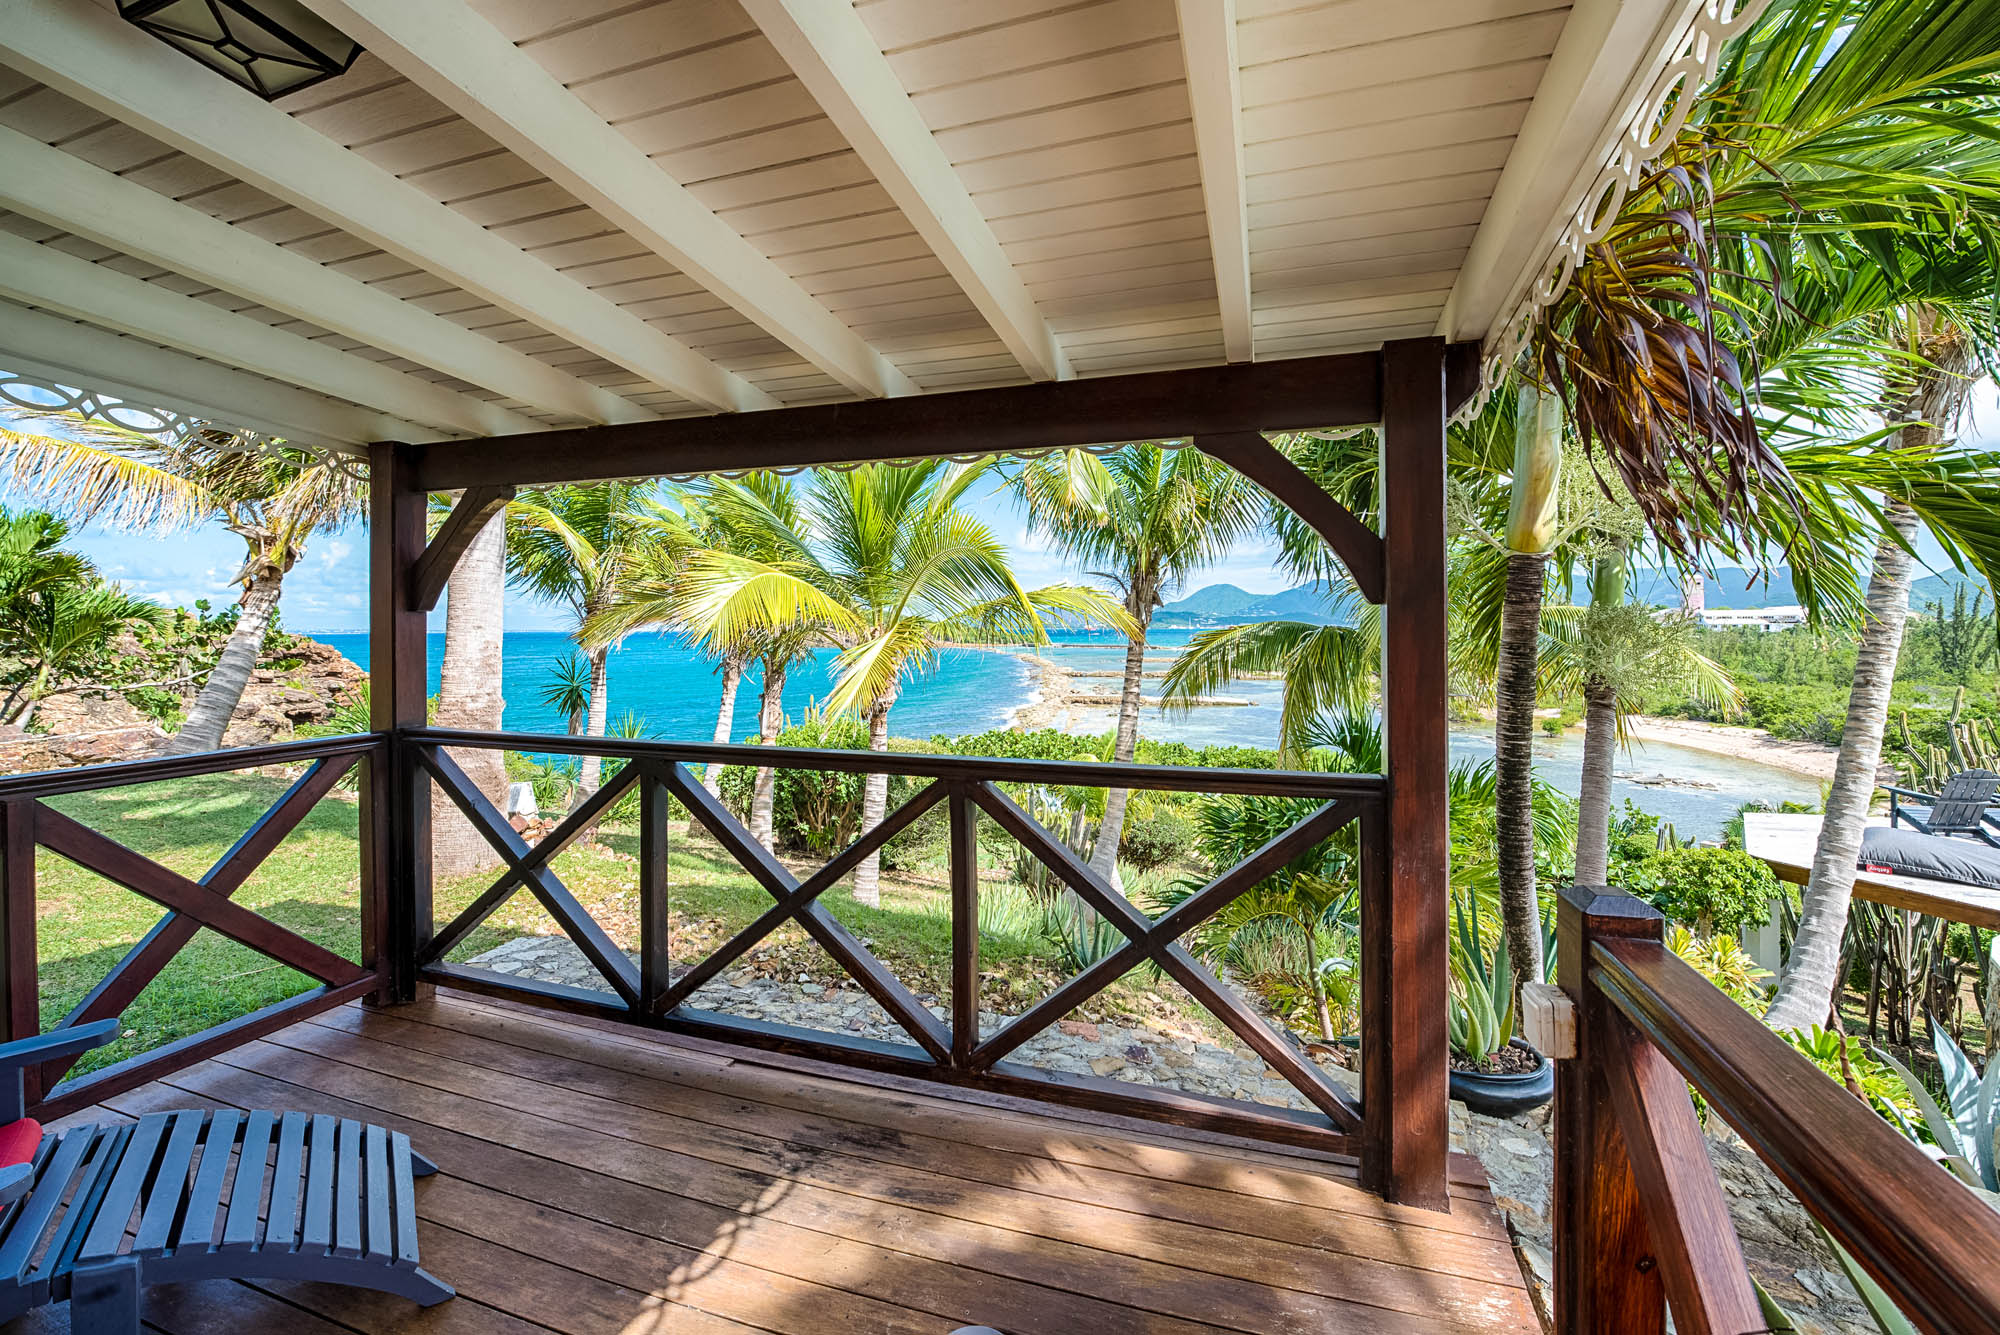 Beautiful turquoise water combined with palm trees makes Le Mas des Sables an authentic Carribean holiday villa rental.